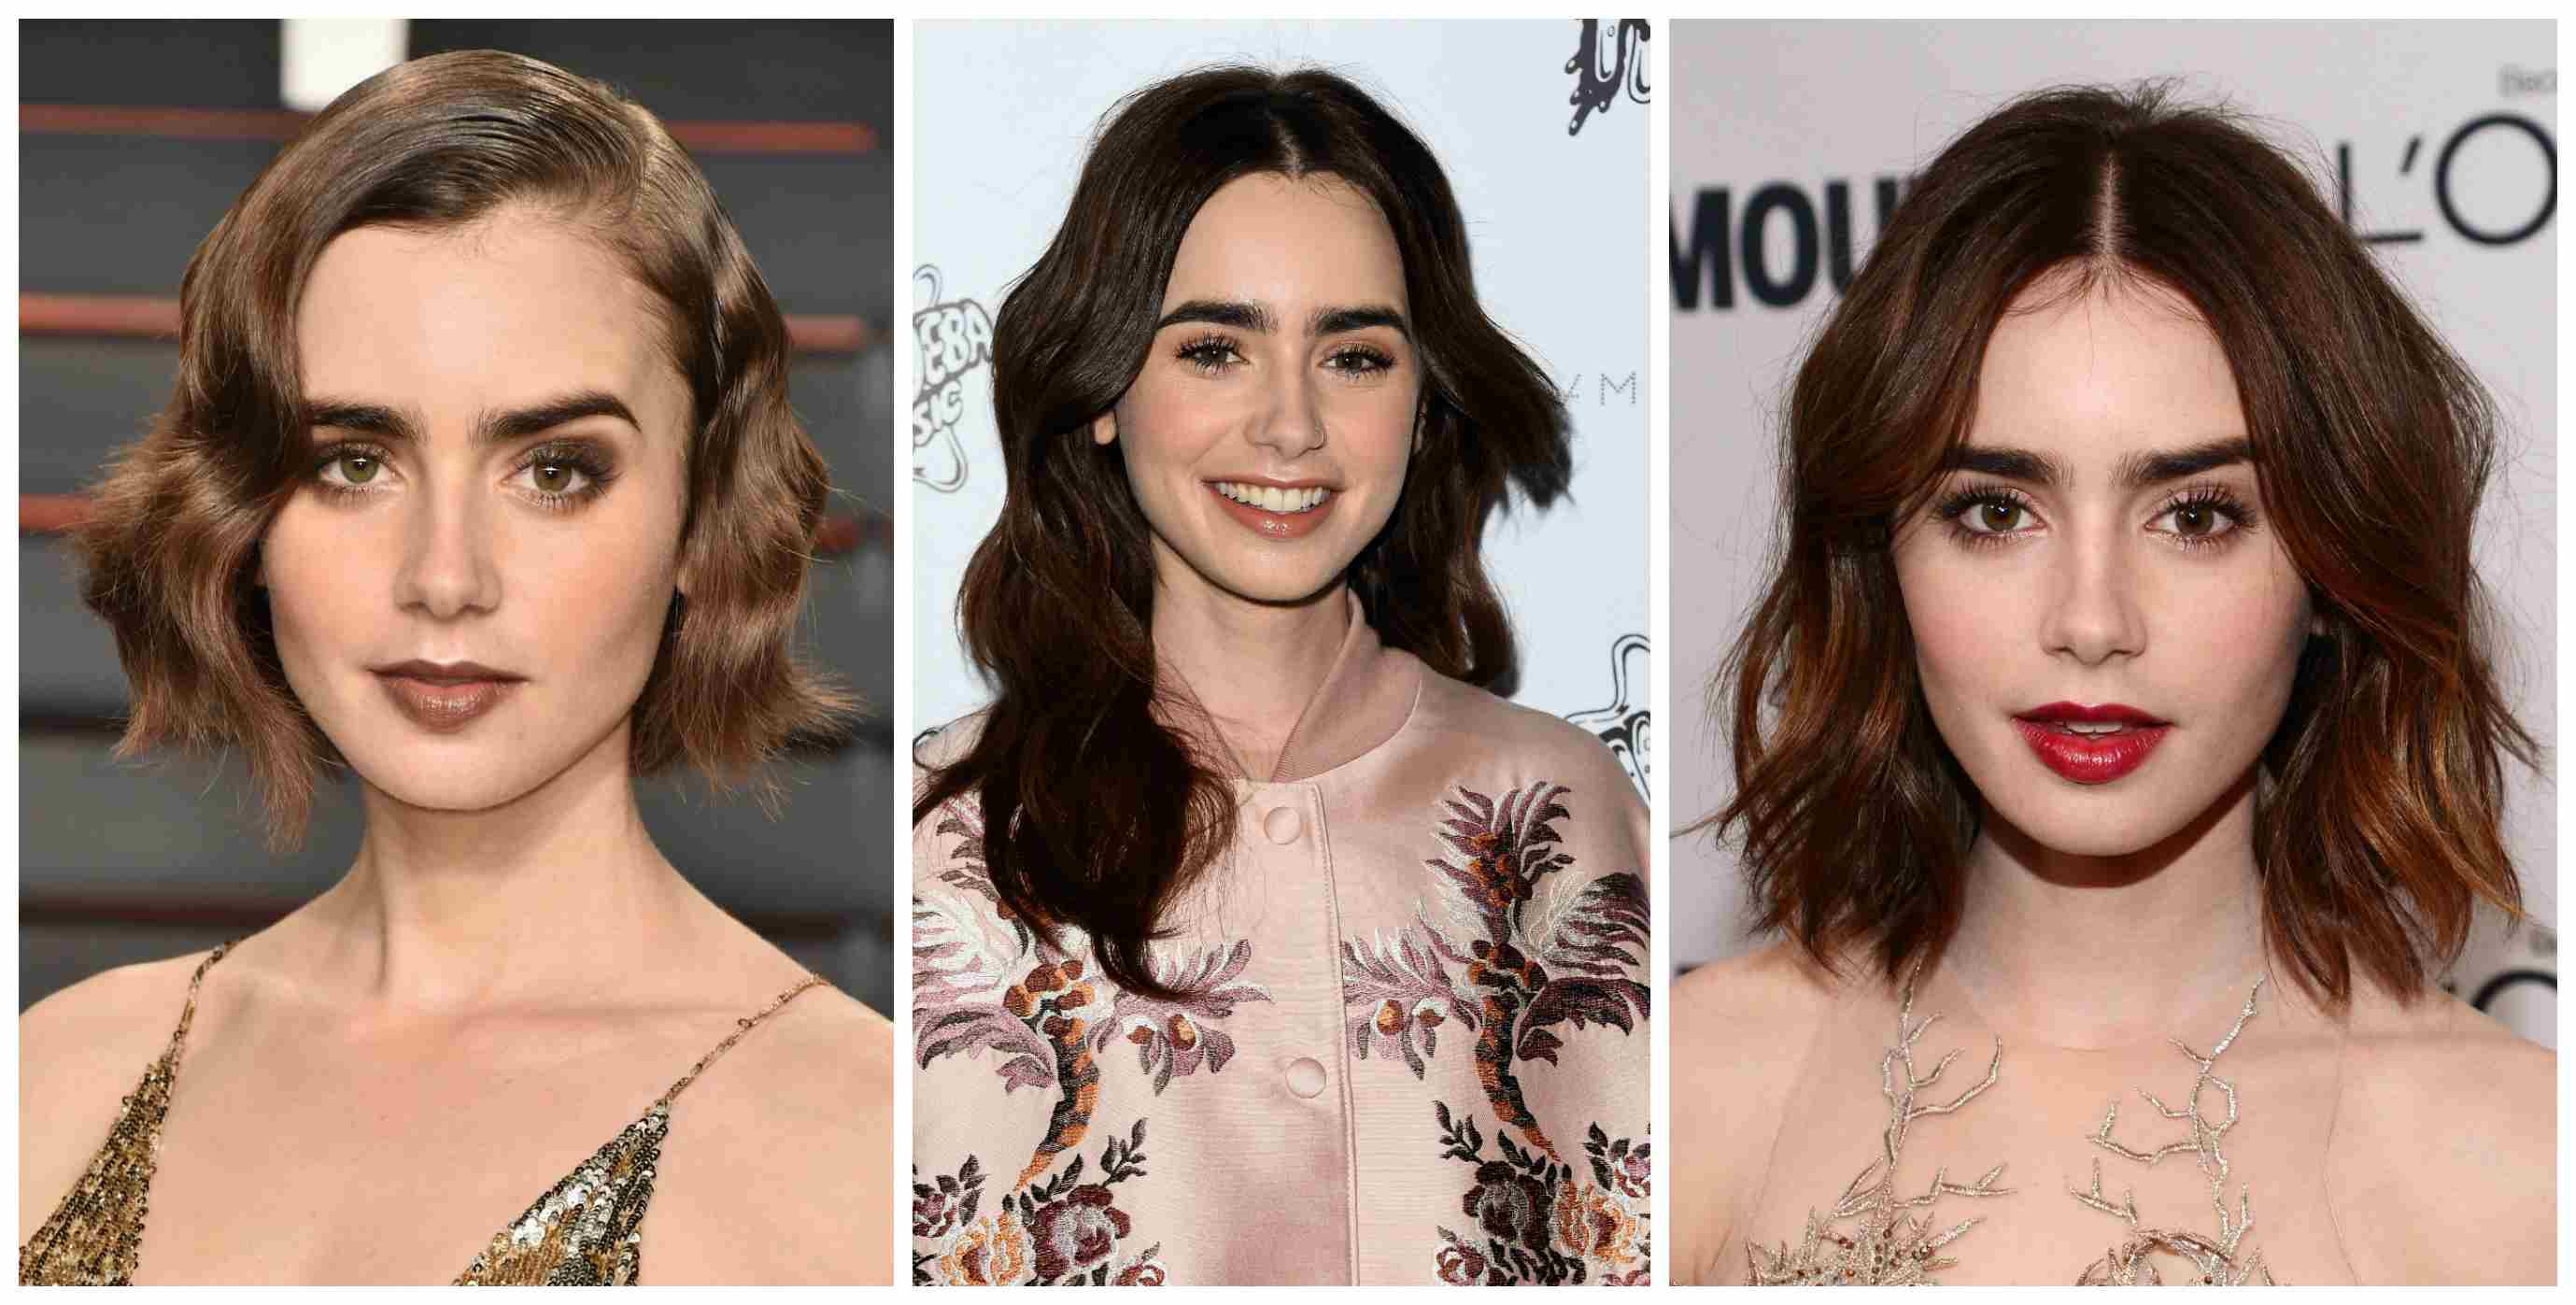 3 Hair Lengths One Woman Which Suits Her Best